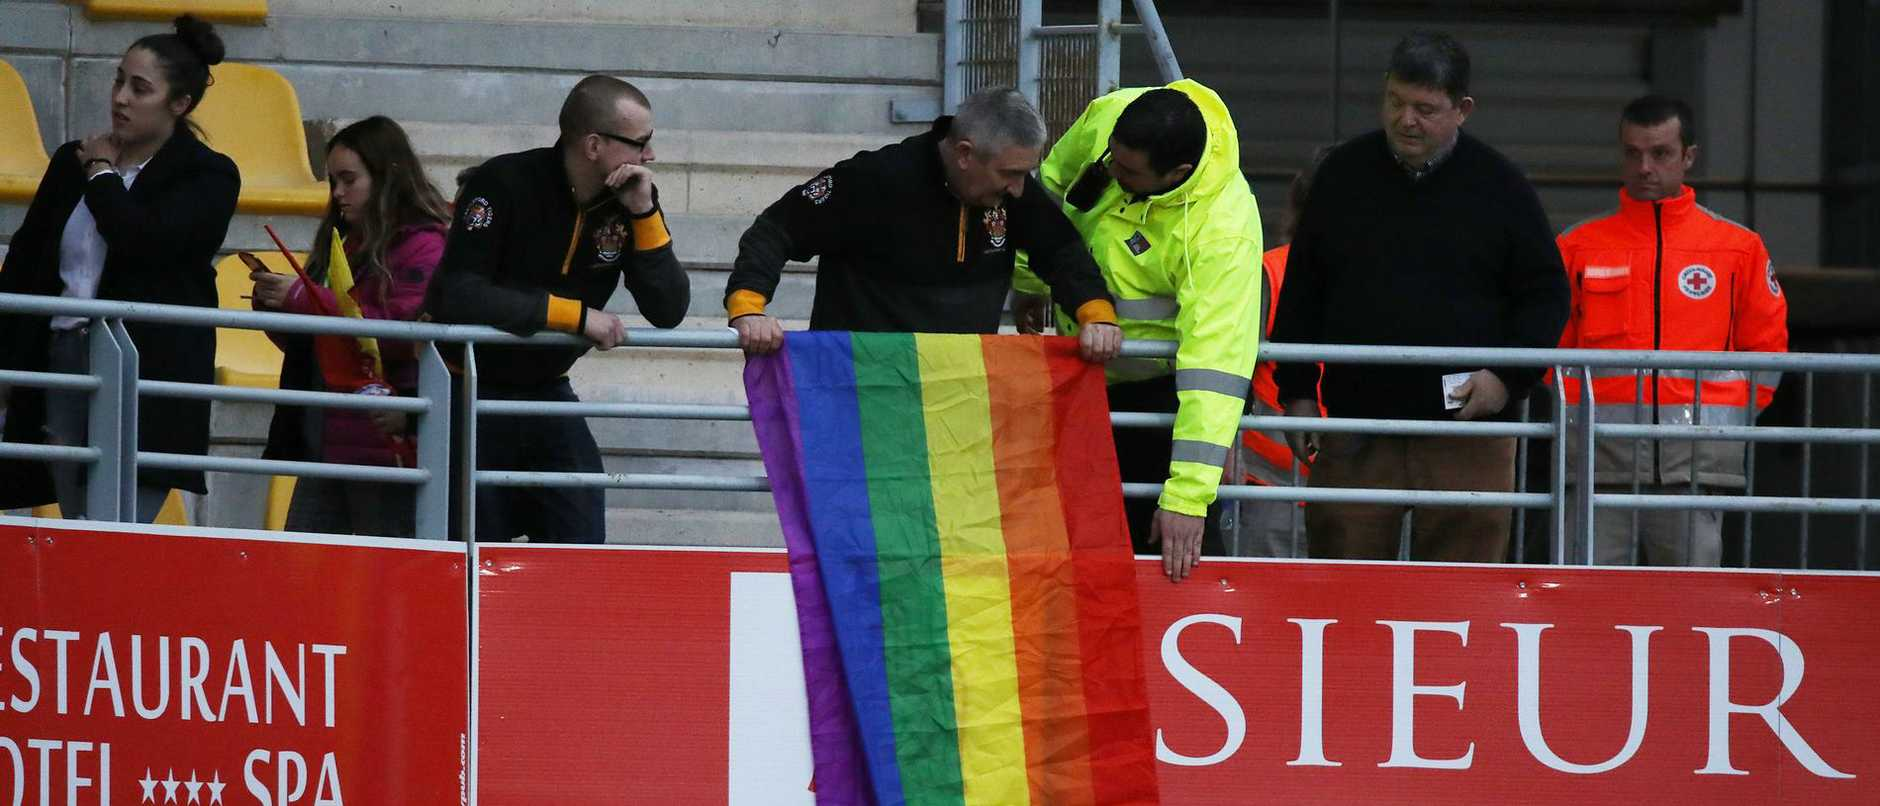 Two fans protesting Israel Folau's anti-gay statements at his first match of rugby league in a decade were asked by security to take down their rainbow flag.